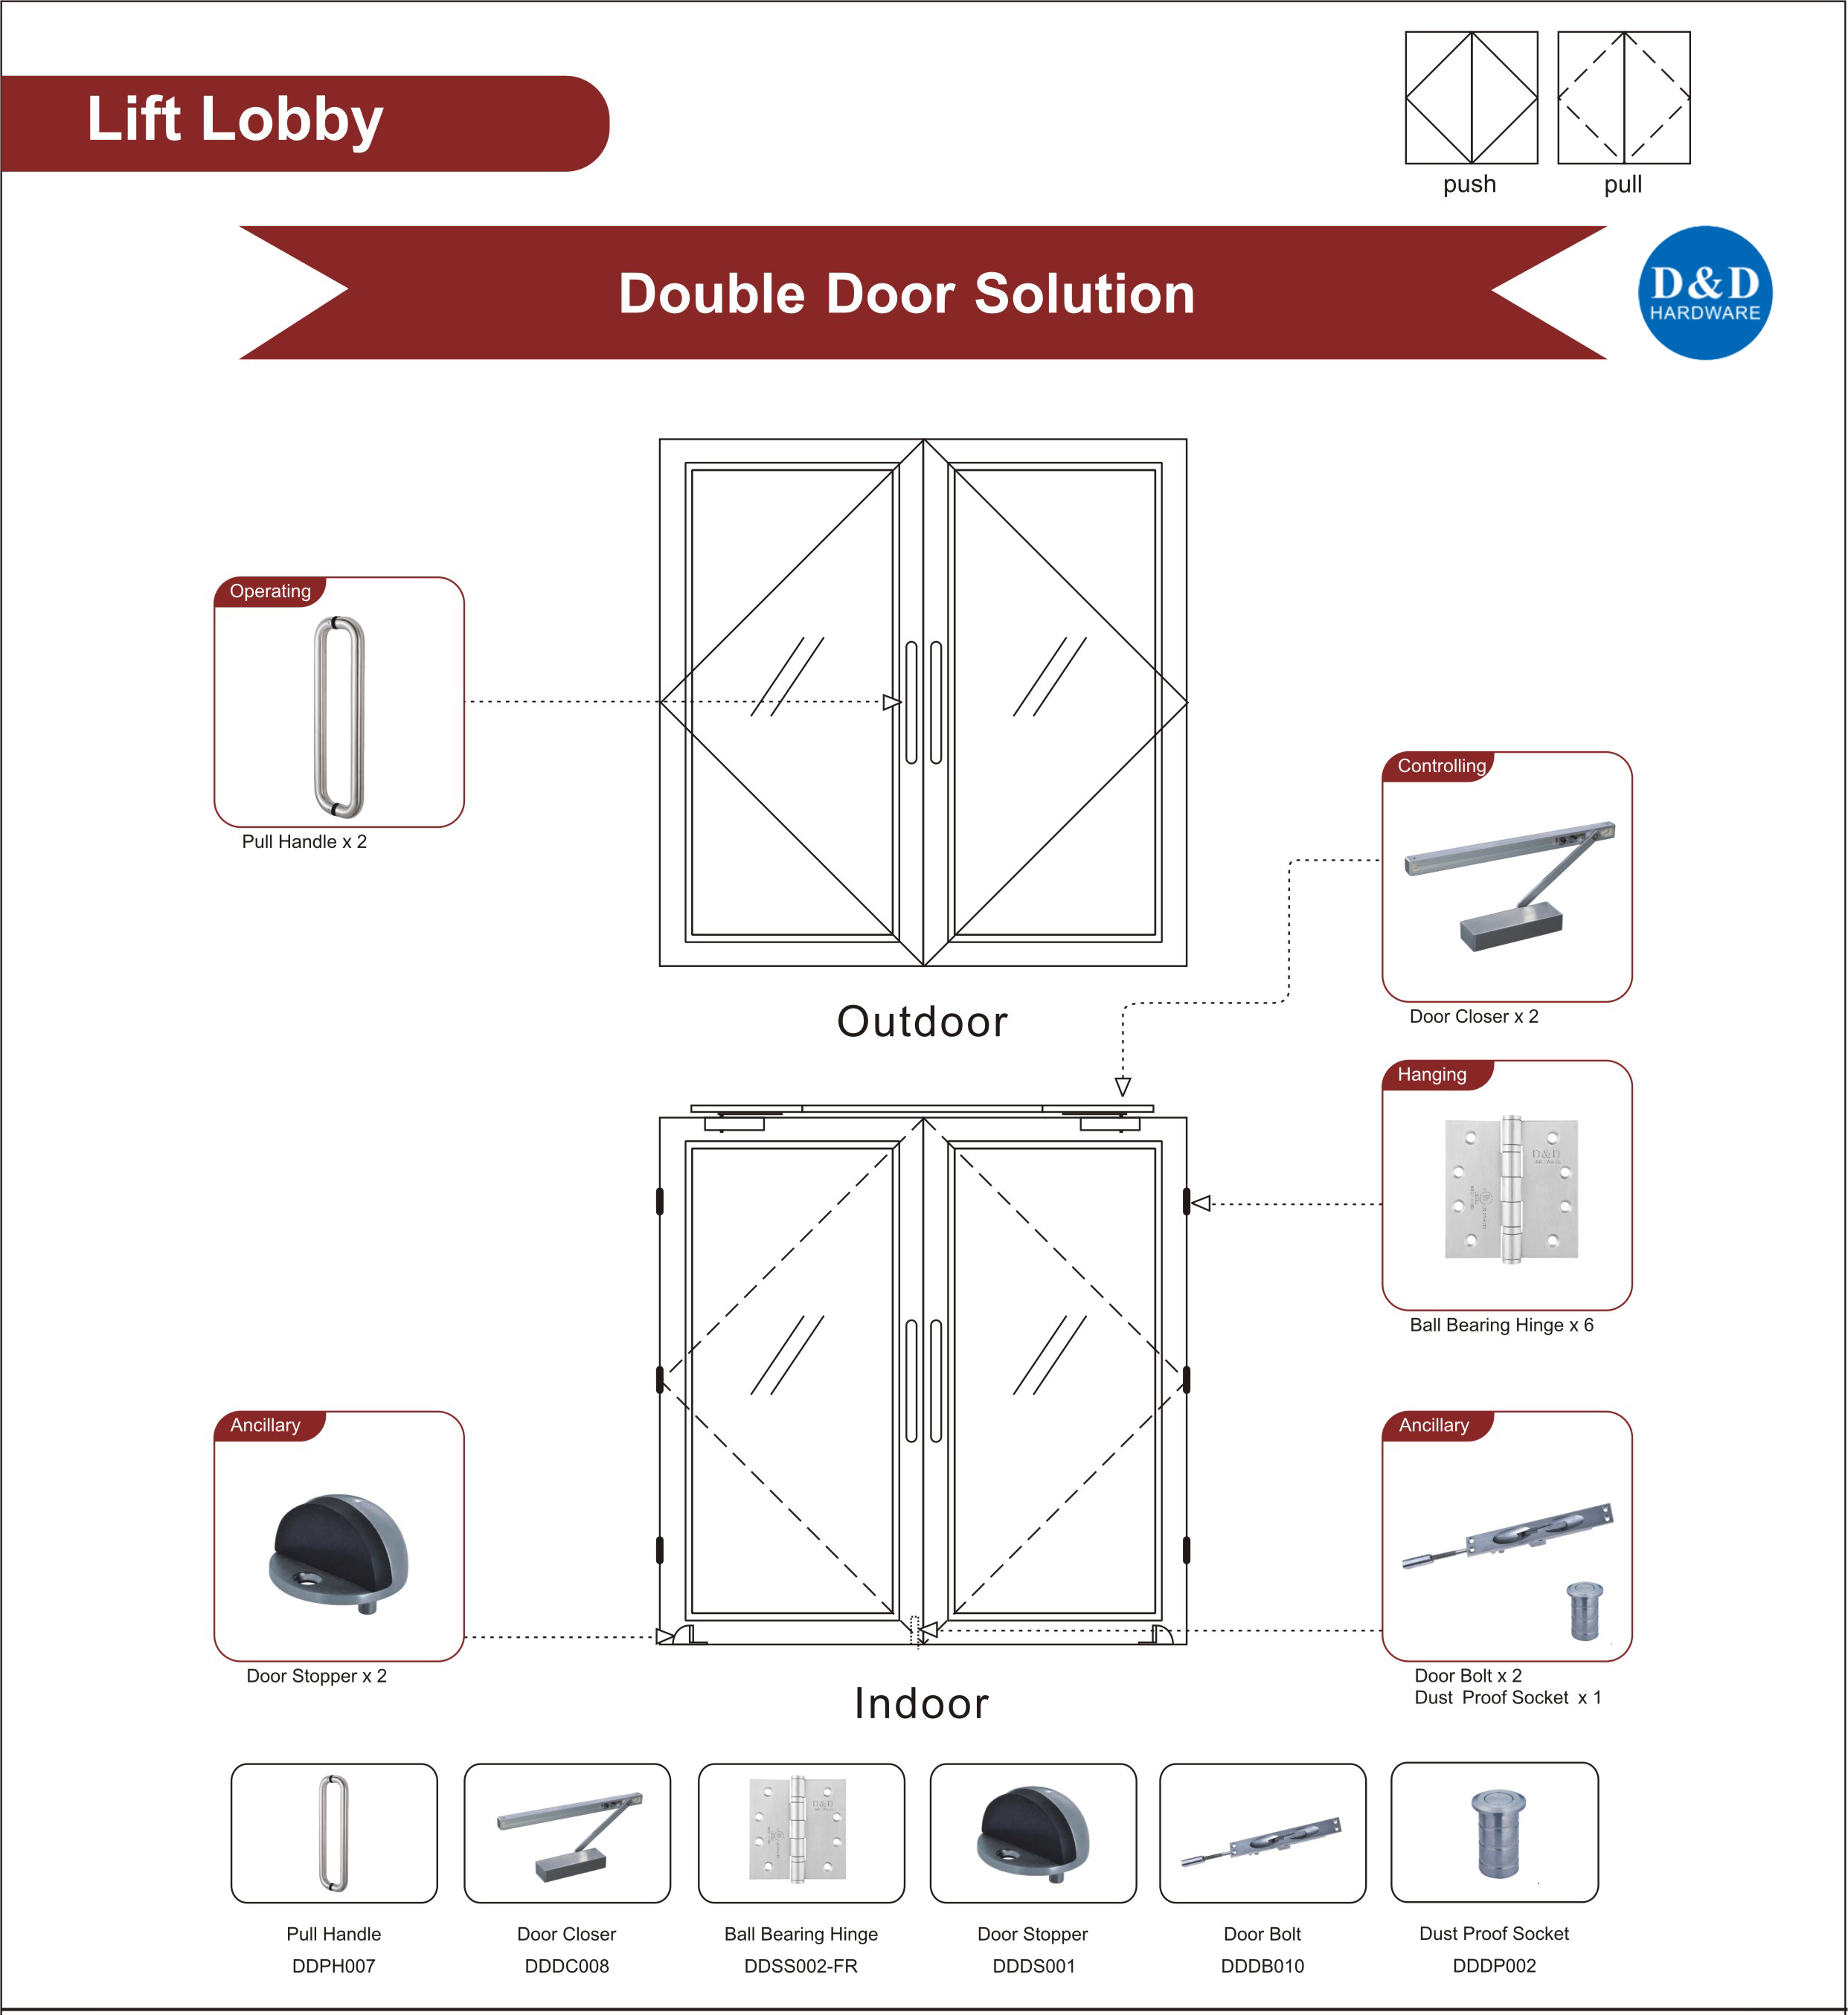 Fire Rated Glass Door Ironmongery for Lift Lobby Double Door